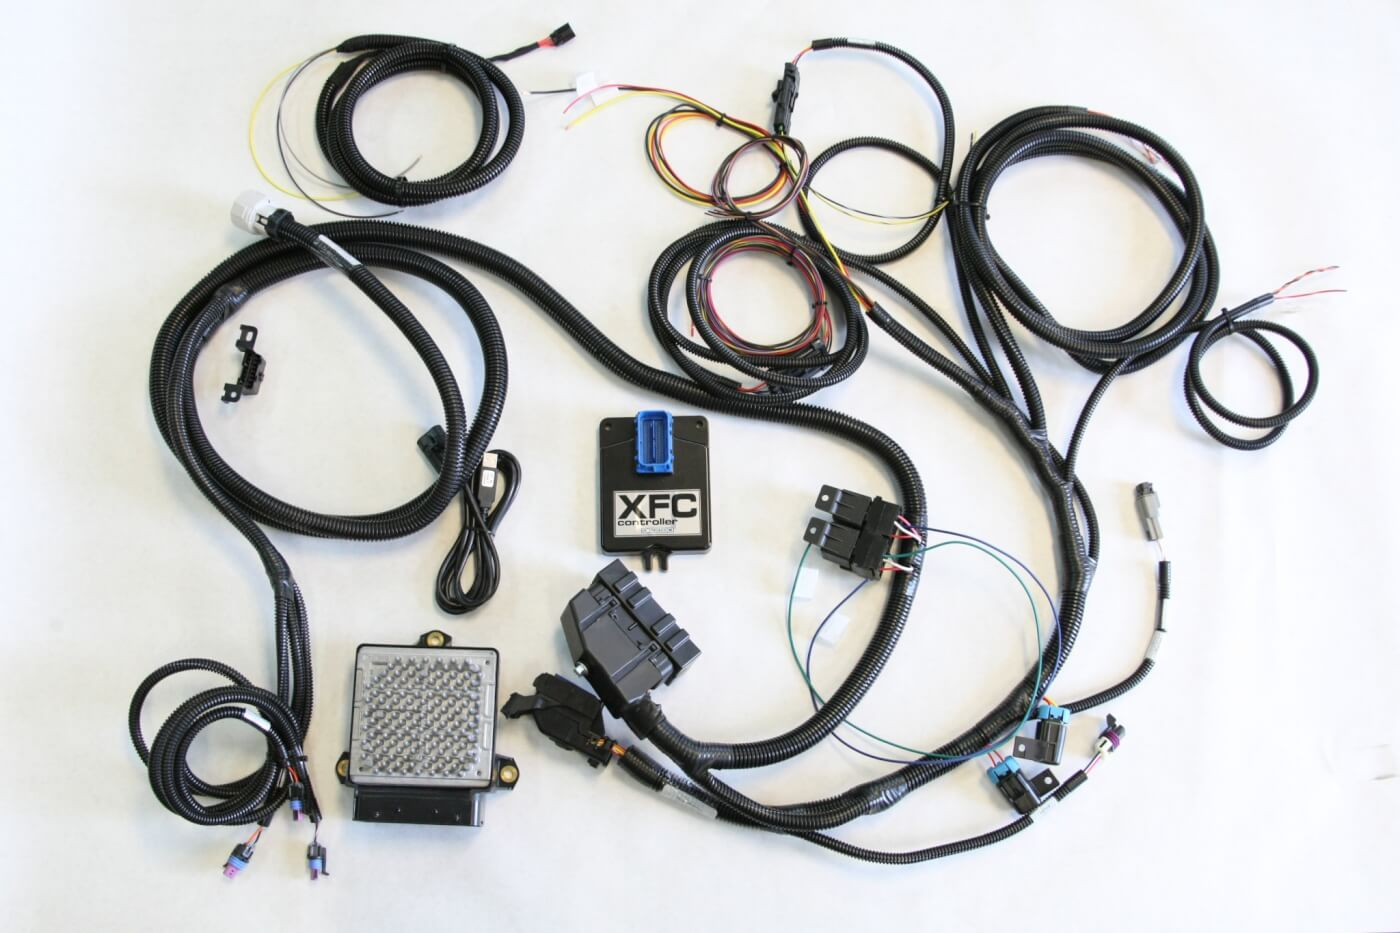 New Products: sel Swaps! Everything You'll Need to Pull Off a ... on duramax conversion fuel tank, duramax standalone harness, cummins conversion wiring harness, toyota conversion wiring harness, duramax swap harness,